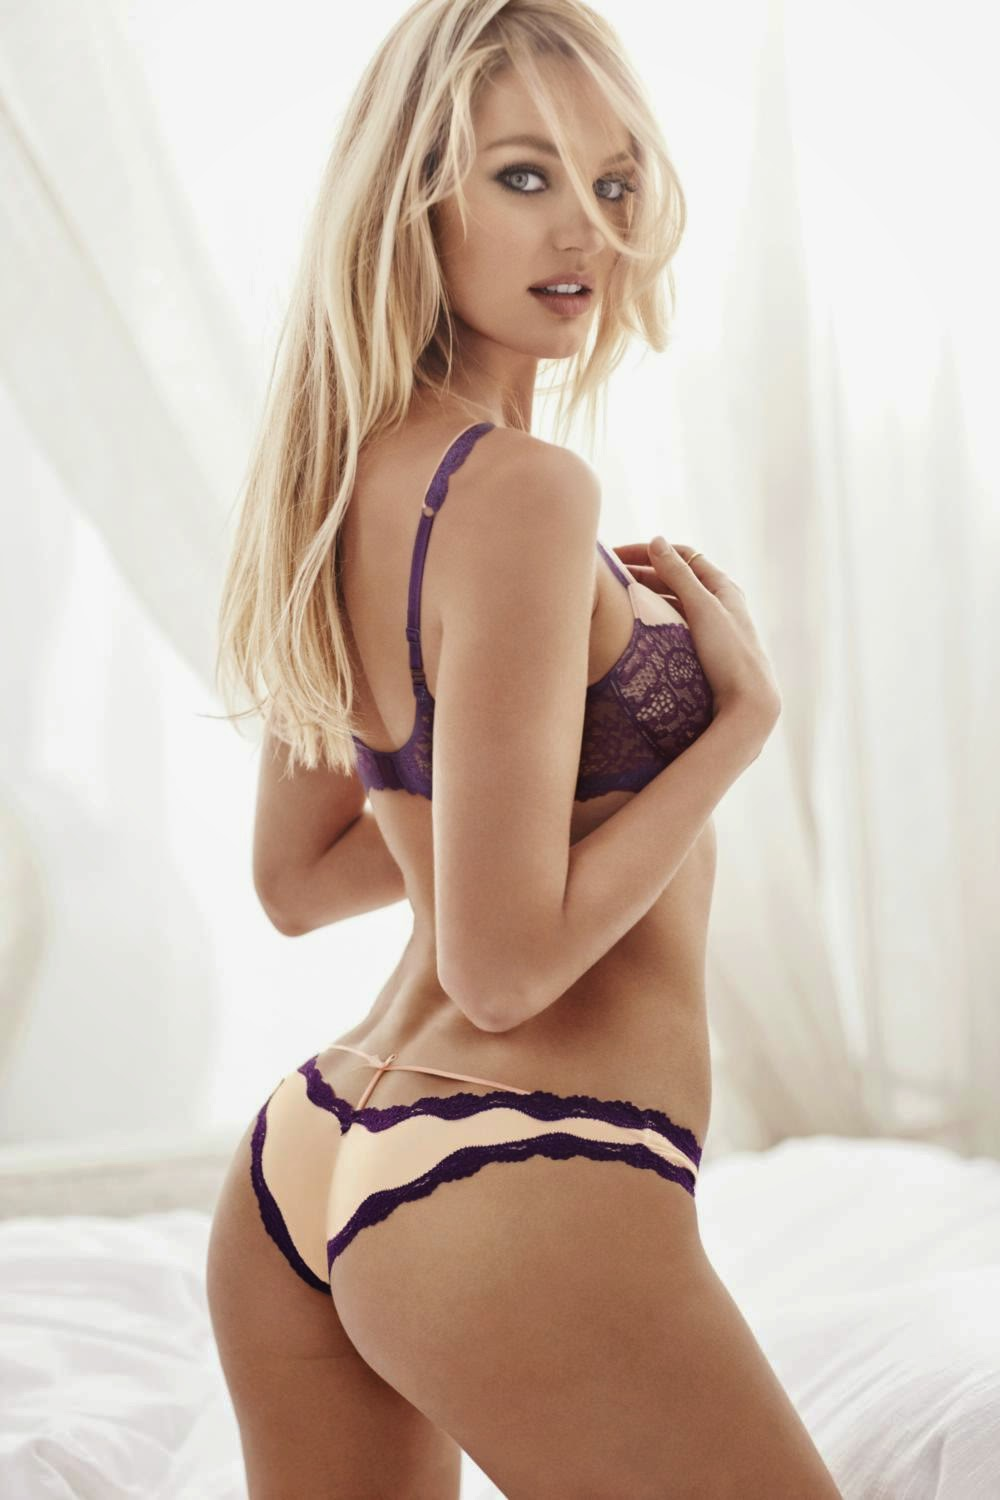 Victoria's Secret Dream Angels April 2015 Lookbook